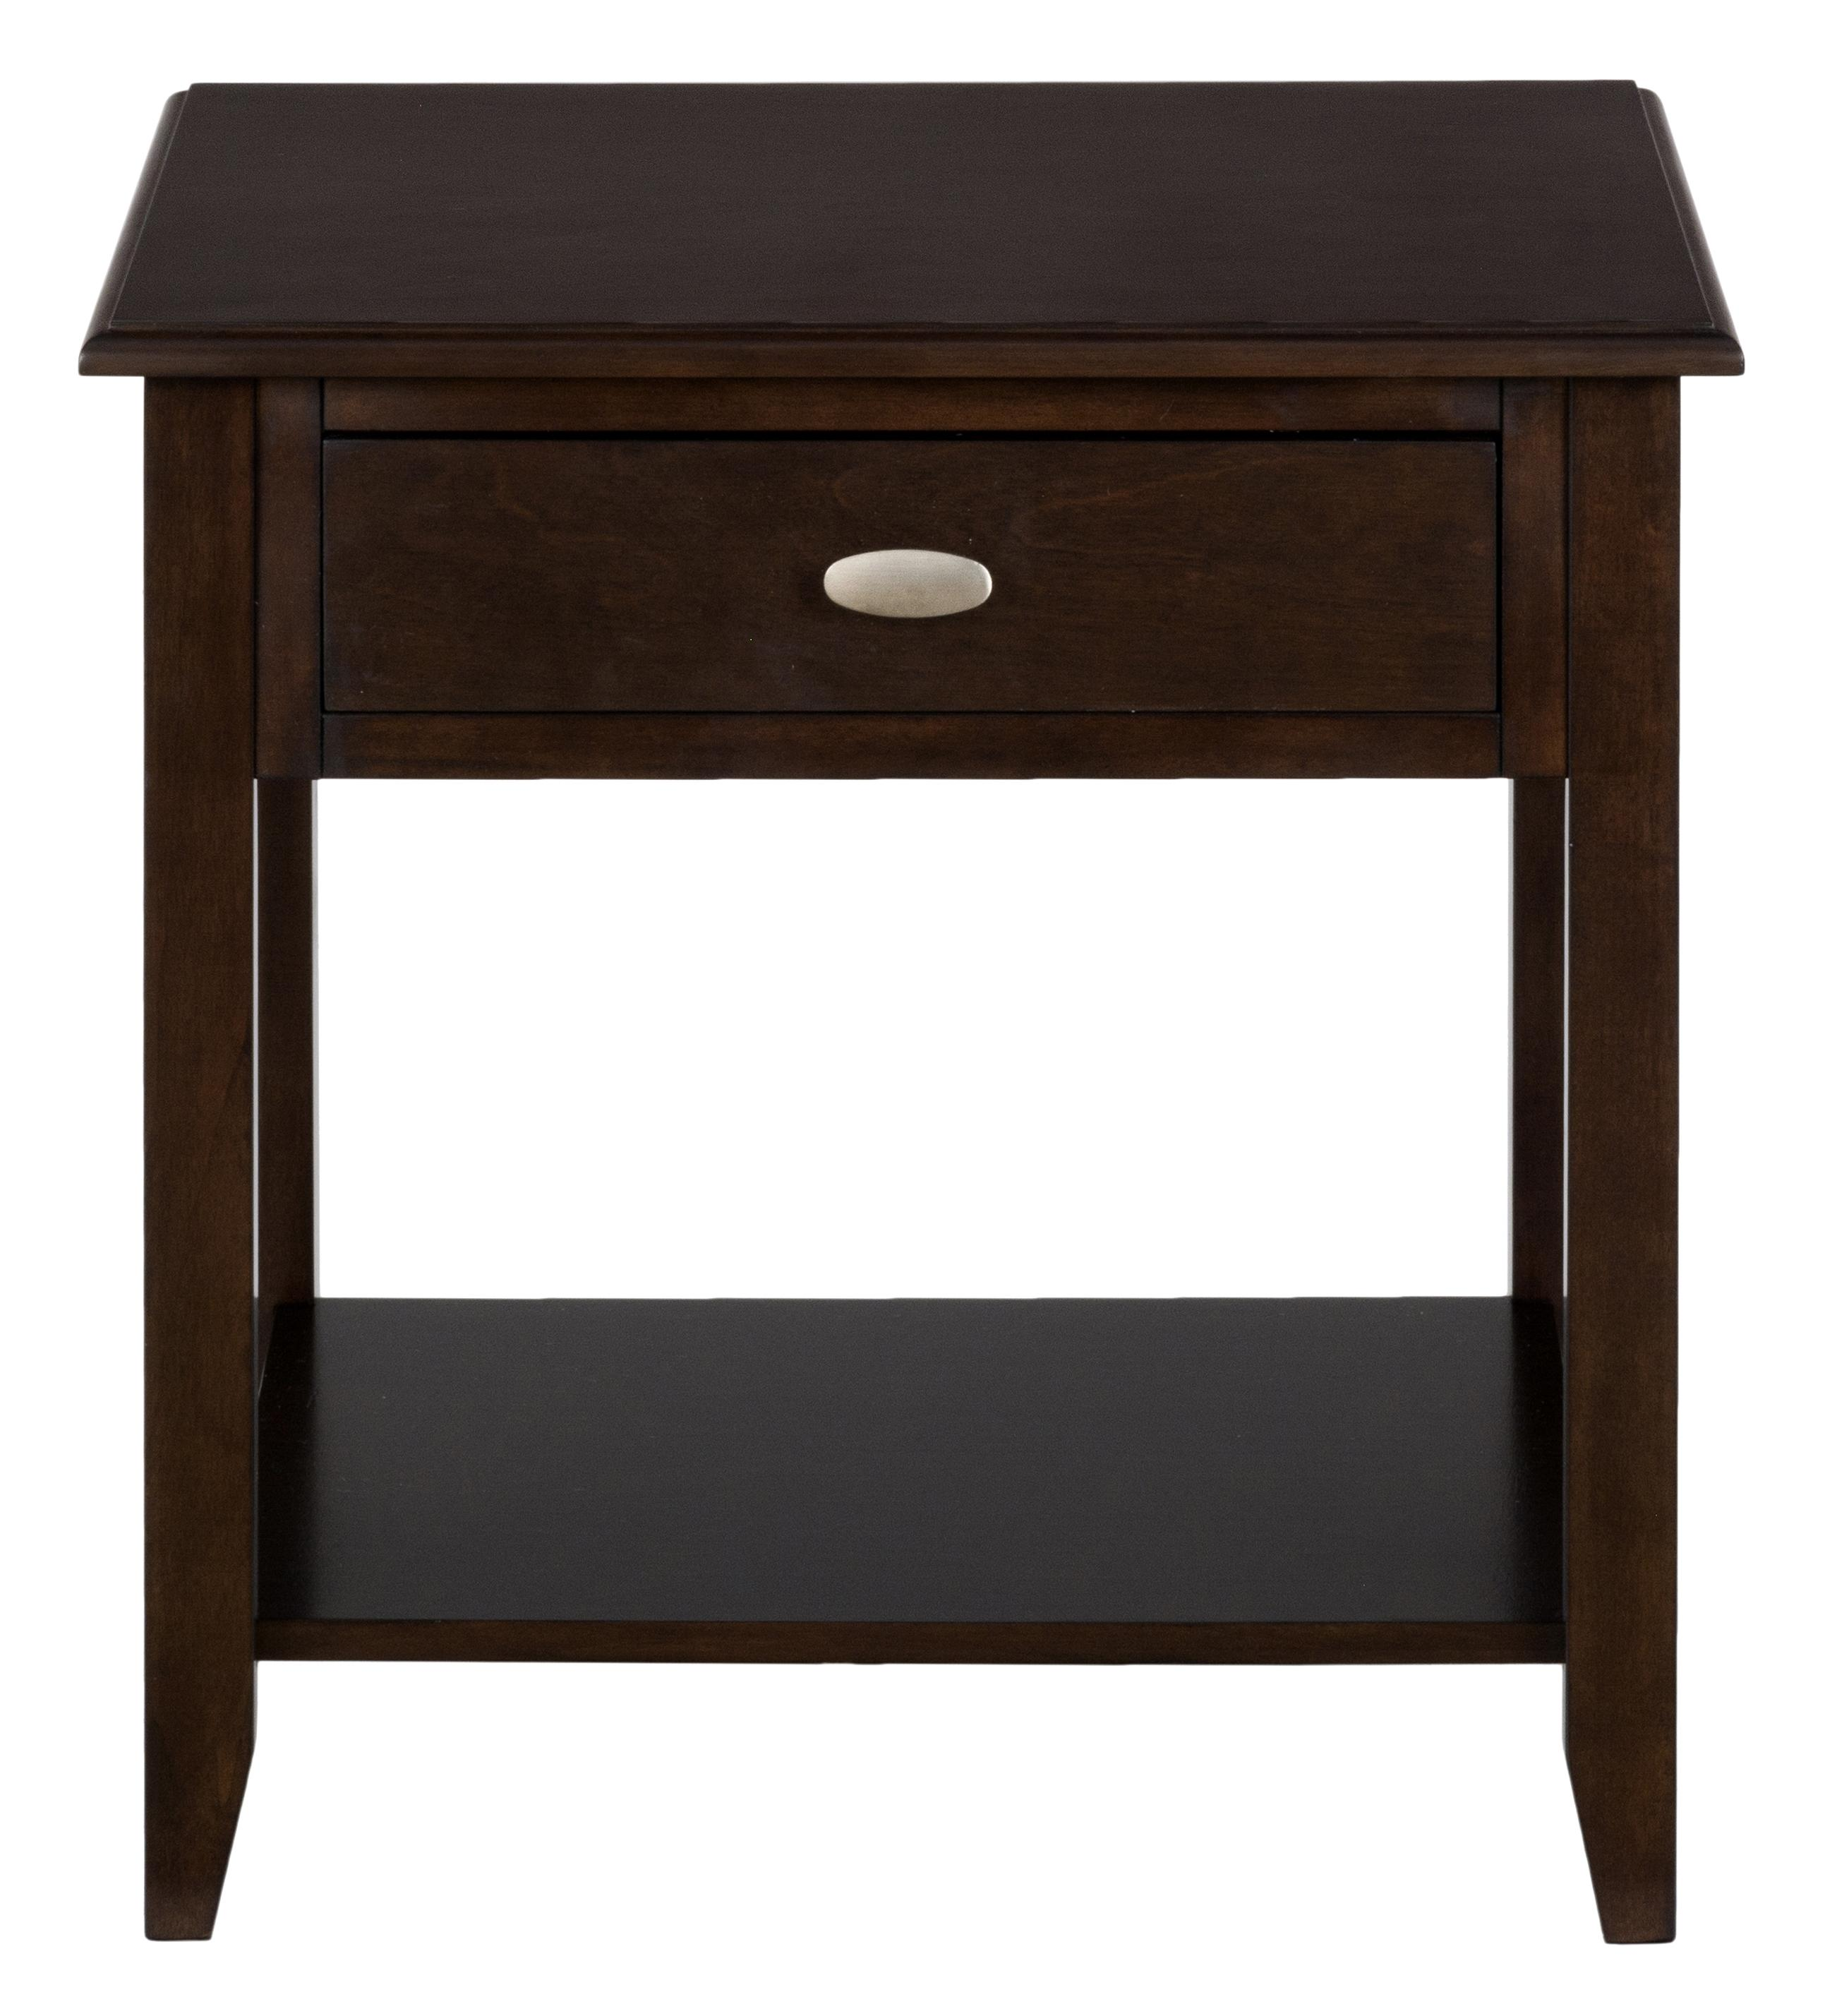 Merlot End Table by Jofran at Stoney Creek Furniture